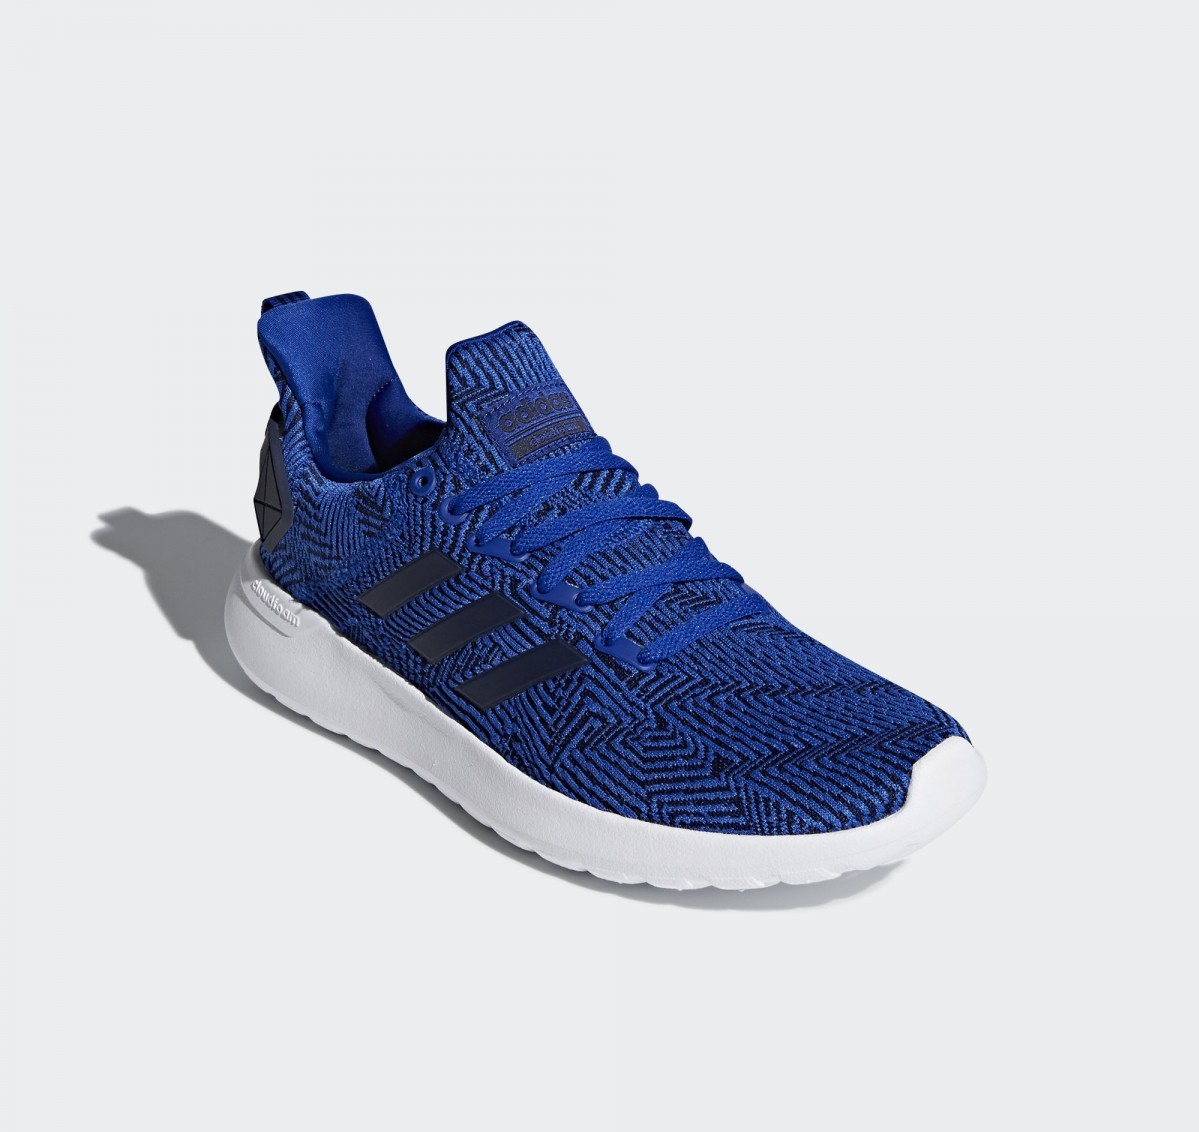 Adidas Cloudfoam Lite Racer BYD Zapatillas Hombre DB1612 Azules